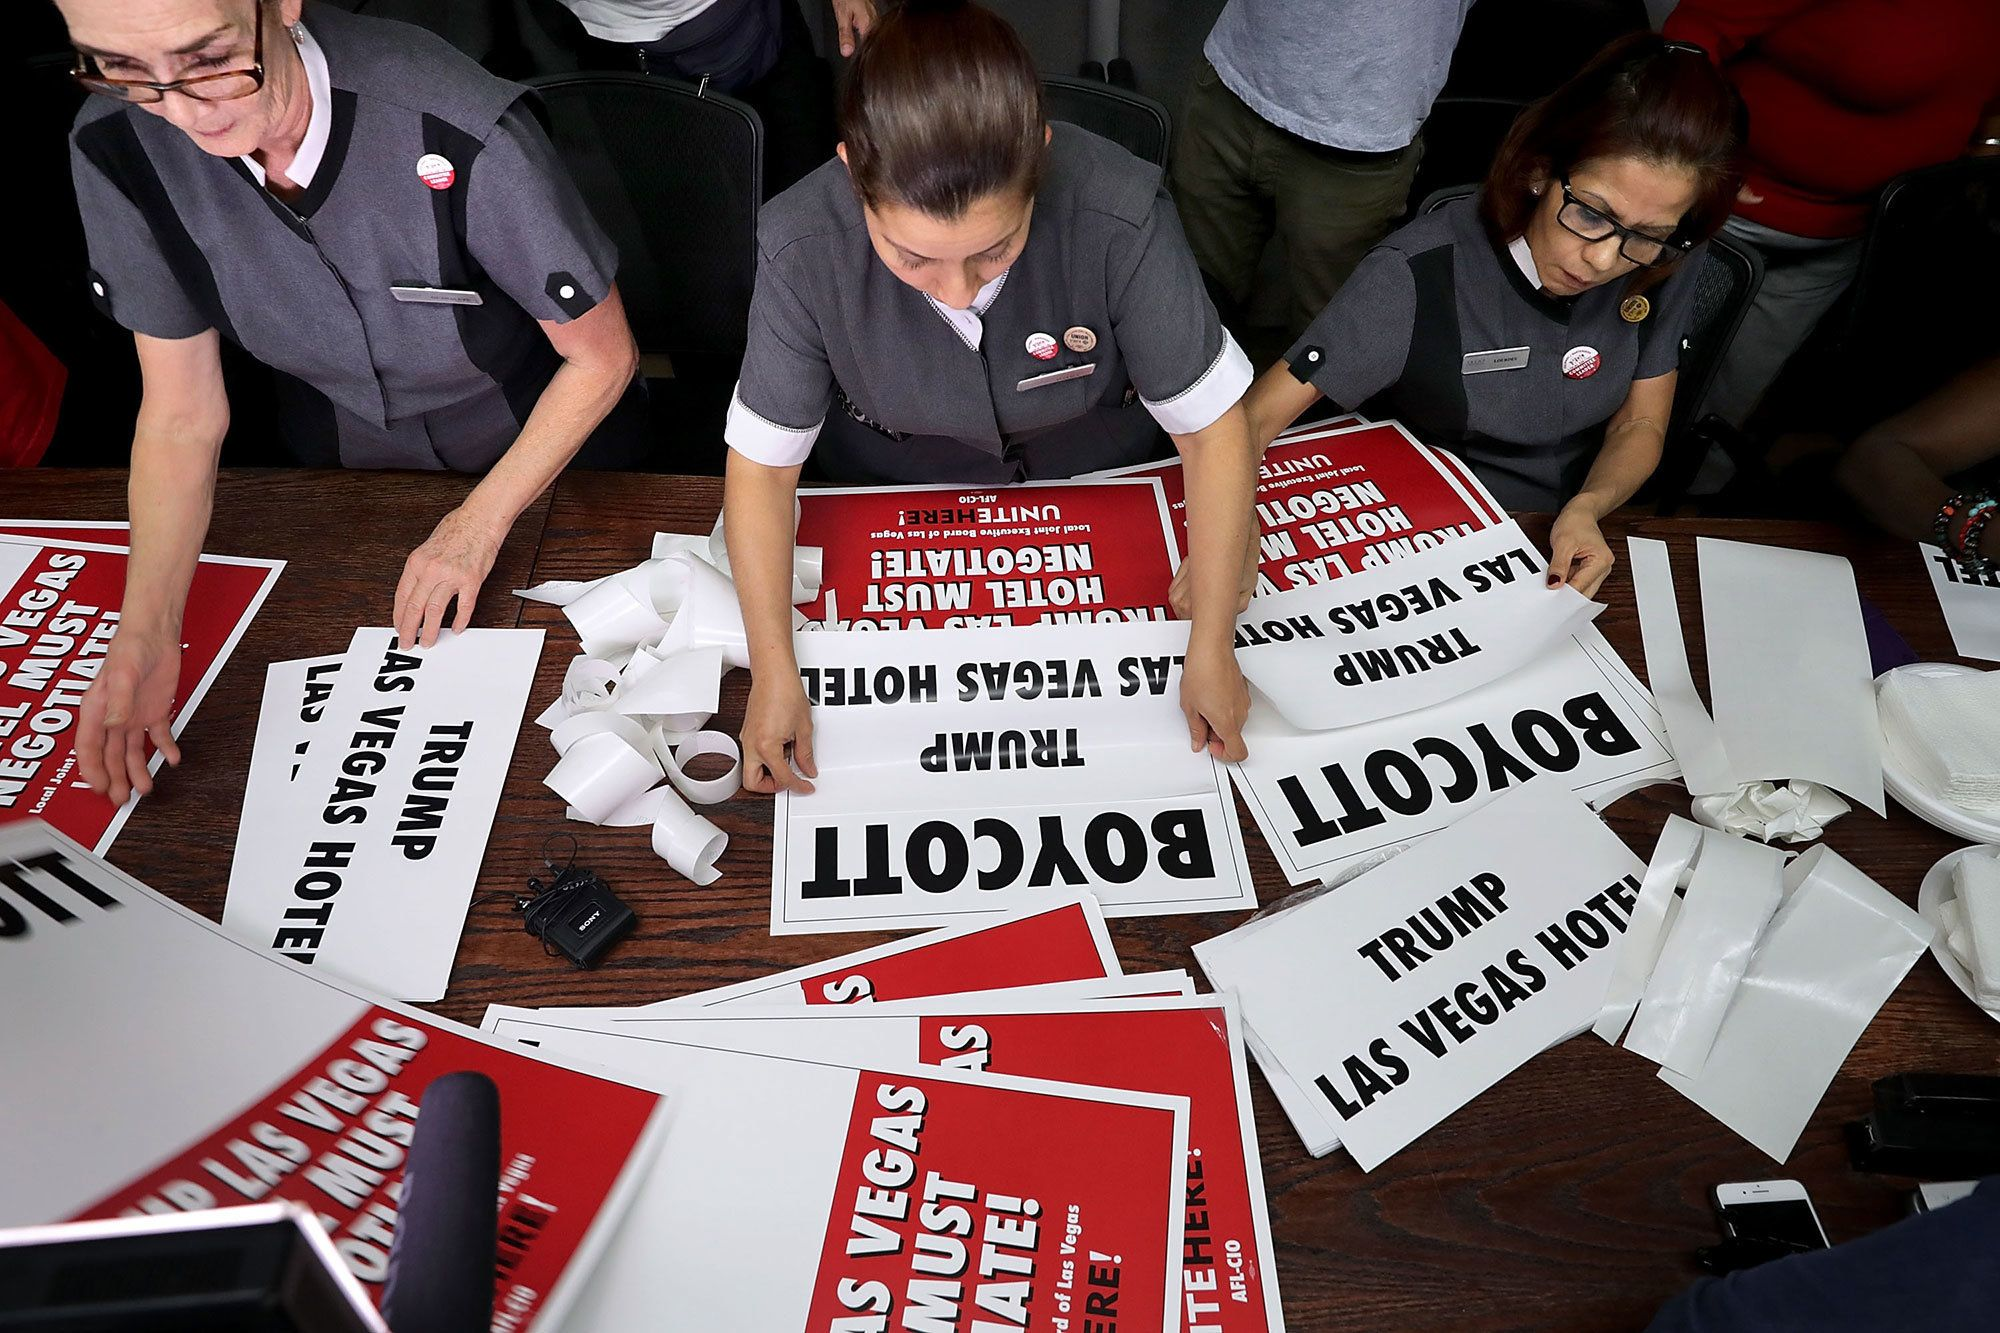 <p>Trump International Las Vegas employees and members of the Culinary Workers Union Local 226 (L-R) Guadalupe Barba, Ivelice Martinez and Lourdes Rivera assemble picket signs at their union headquarters on Oct. 18, 2016 in Las Vegas, Nev. The union members and their supporters will carry the signs as they march in front of the hotel the same day that Republican presidential nominee Donald Trump will debate Democratic presidential nominee Hillary Clinton at the University of Nevada Las Vegas. (Photo: Chip Somodevilla/Getty Images) </p>